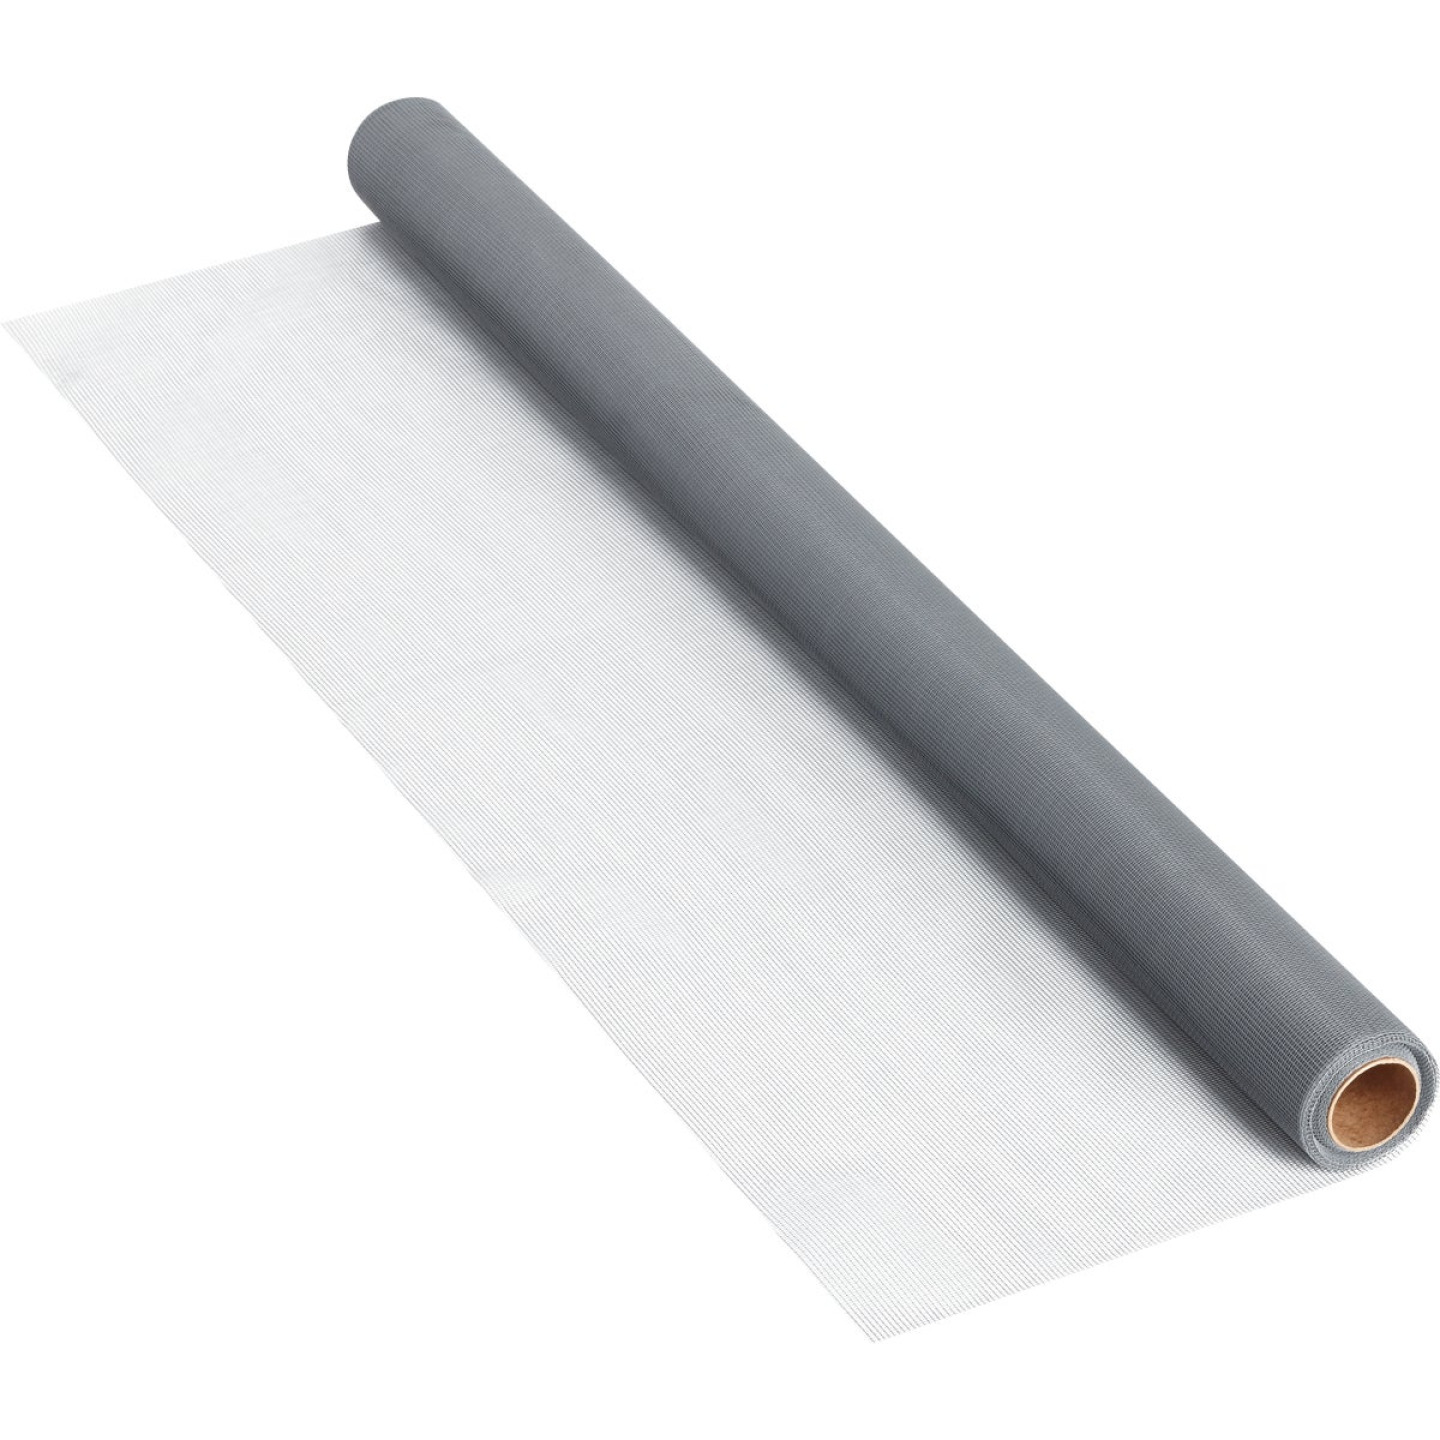 Phifer 48 In. x 25 Ft. Gray Fiberglass Screen Cloth Image 3